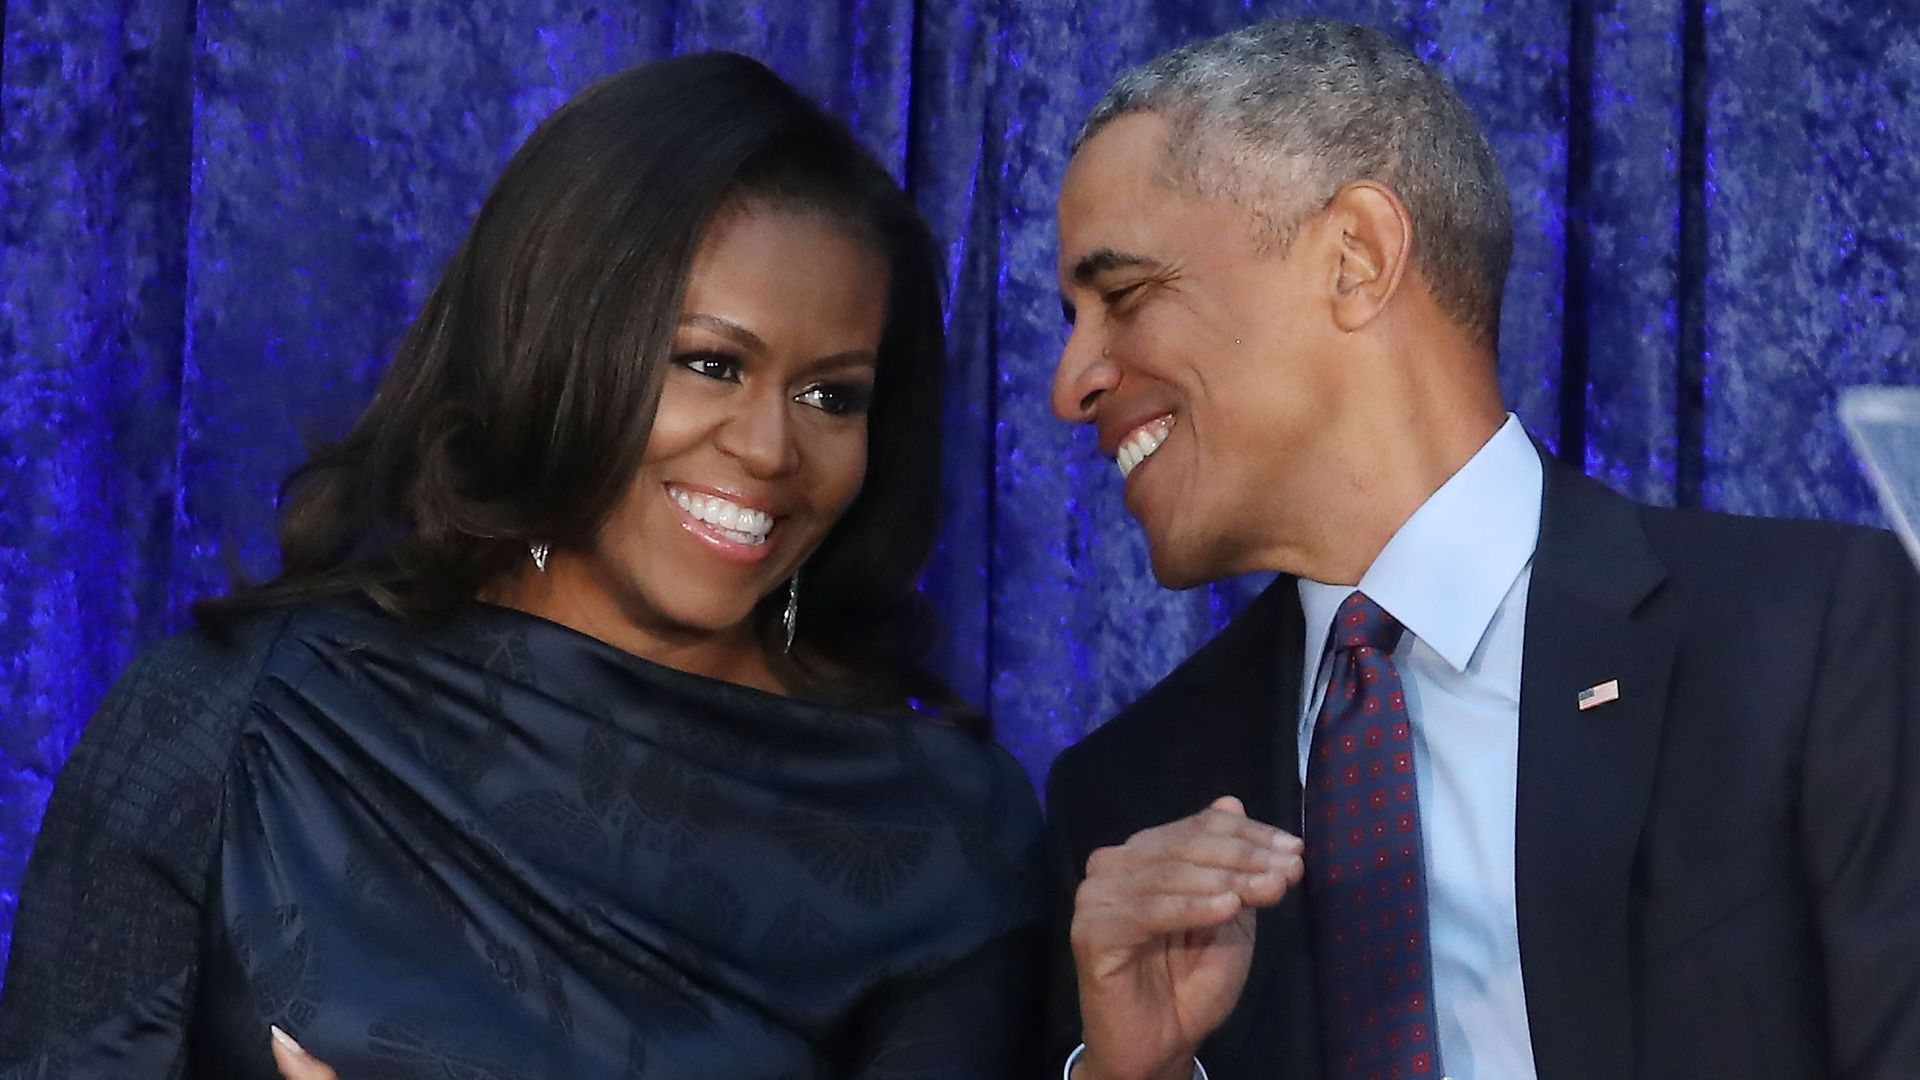 Barack and Michelle Obama sitting down next to each other and leaning toward each other laughing.